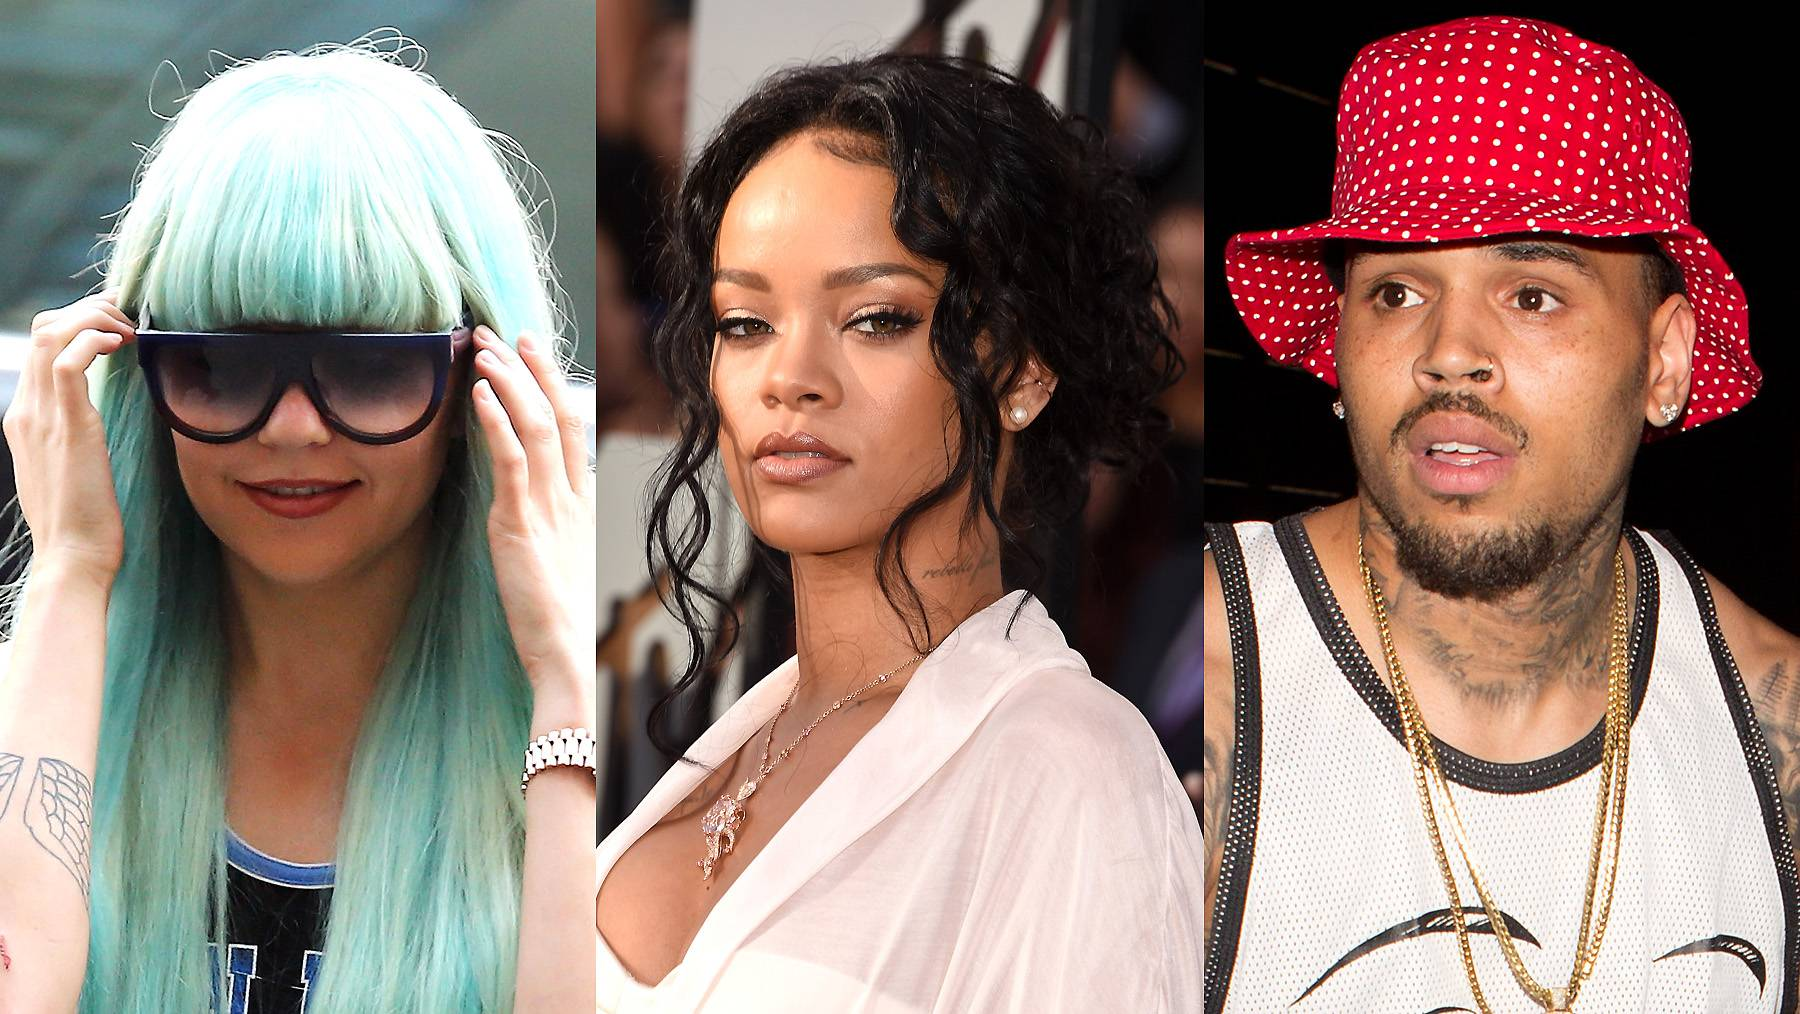 """Amanda Bynes Jokes About Chris Brown/Rihanna Incident - Joking about domestic violence is never funny, but actress Amanda Bynes seemed to think otherwise. During a highly publicized downward spiral, Bynes took to Twitter to randomly attackRihanna and Chris Brown. She later removed the tweet, following a swarm of attacks from their respective fan bases.Tweet: """"@rihanna Chris brown beat you because you're not pretty enough.""""(Photos from left: Neilson Barnard/Getty Images, Jason Merritt/Getty Images for MTV, SPW / Splash News)"""